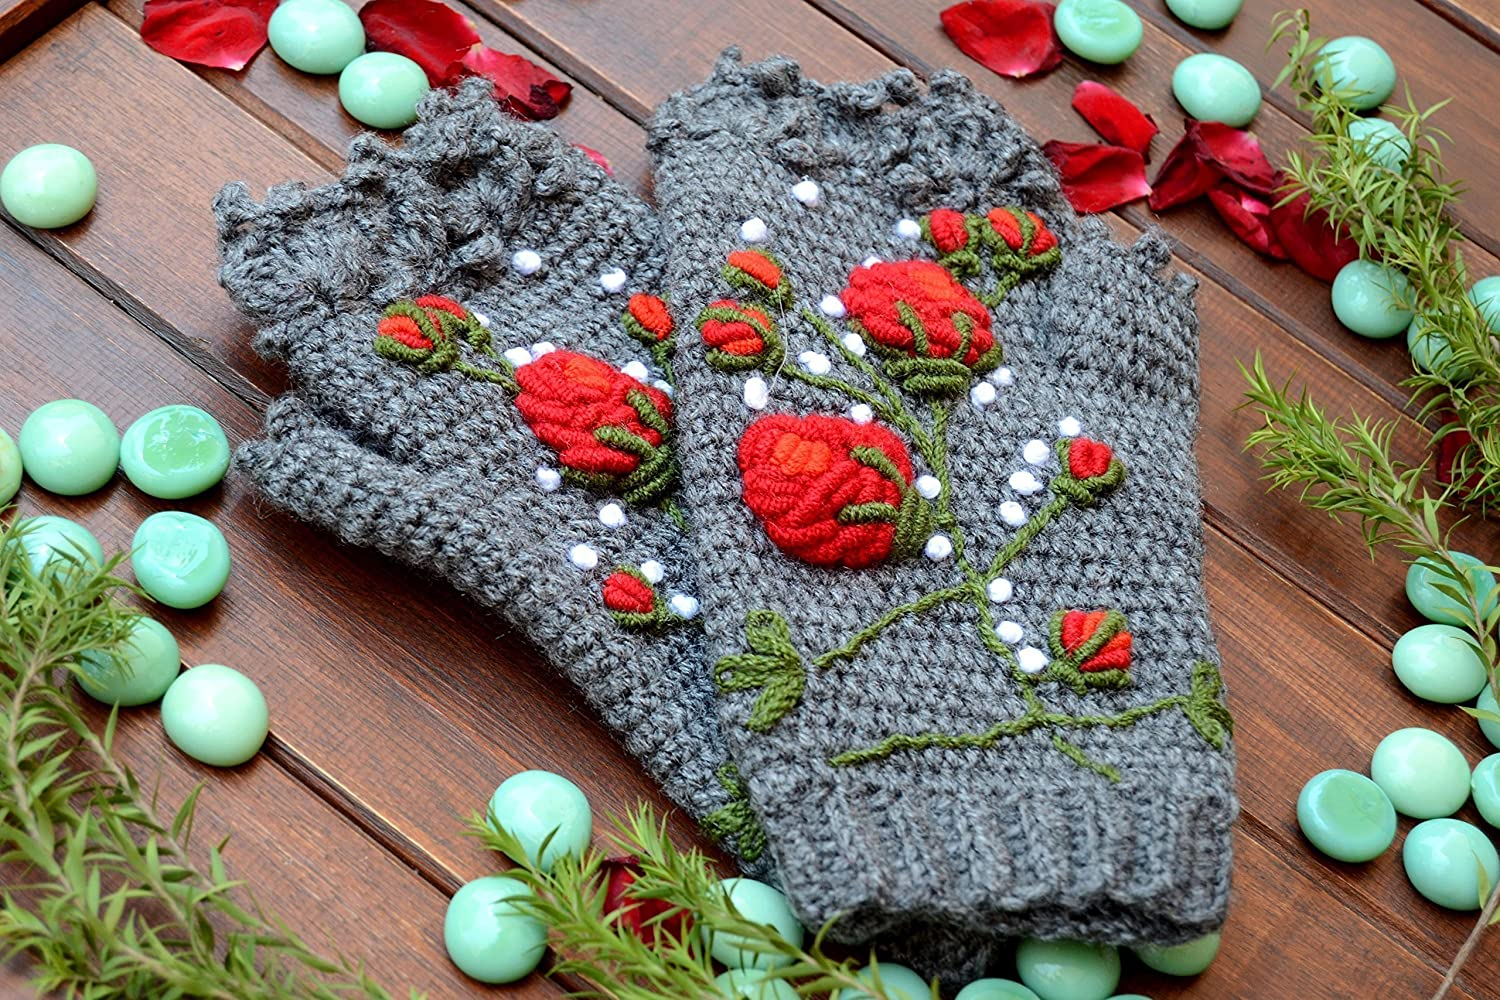 Knitted Fingerless Gloves, Gift Ideas, Winter Accessories, Grey, Candy & Cherry Red, Roses, Wool Gloves, Crochet Gloves, gloves women, gloves fingerless, gloves women winter, fingerless mittens